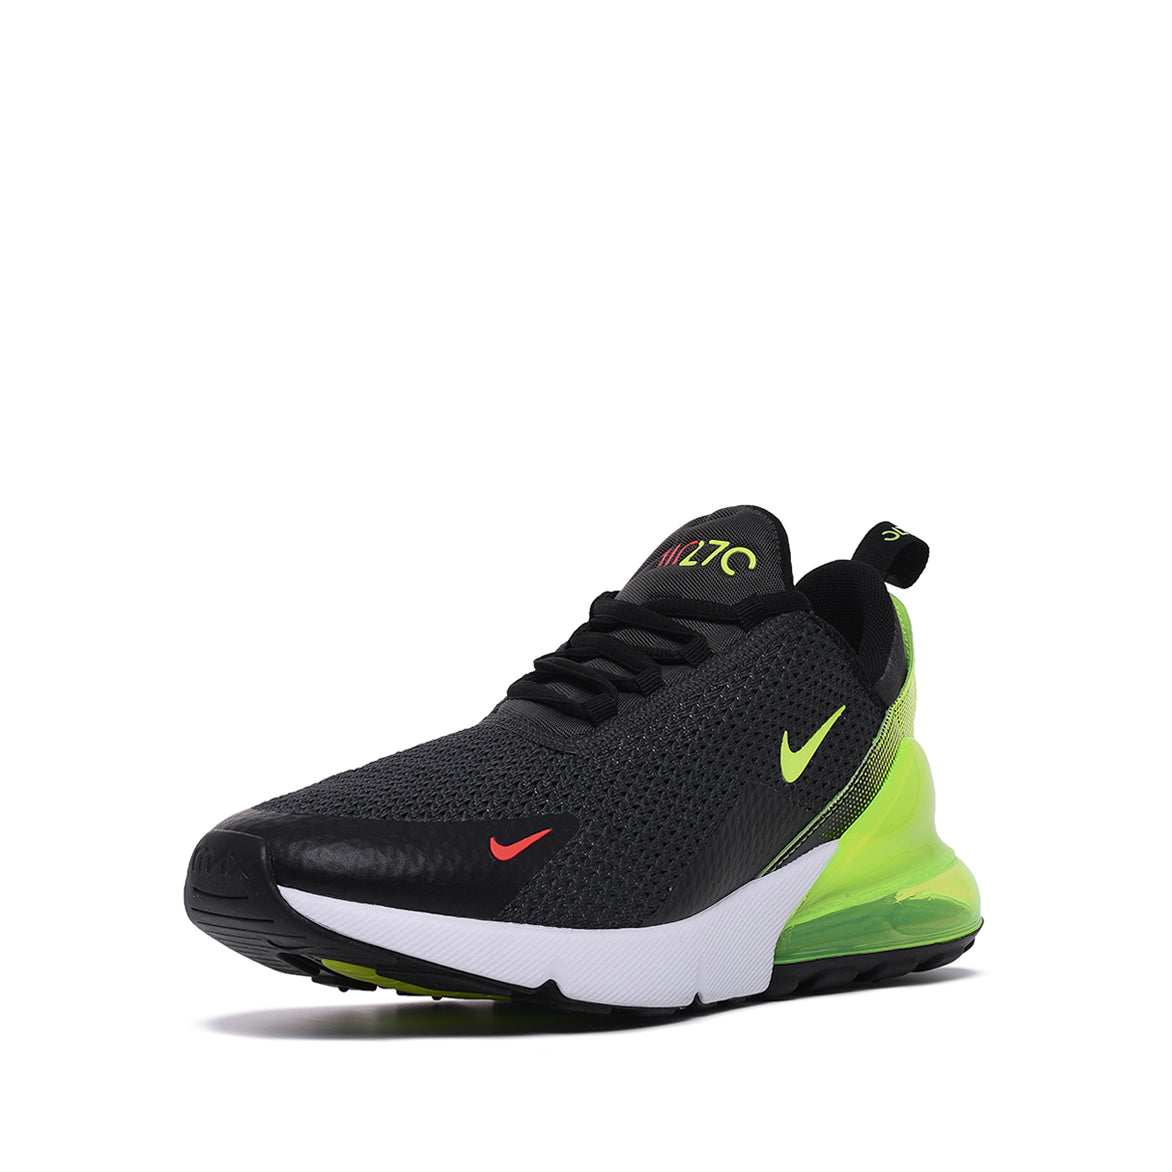 AIR MAX 270 SE - ANTHRACITE / VOLT / BLACK